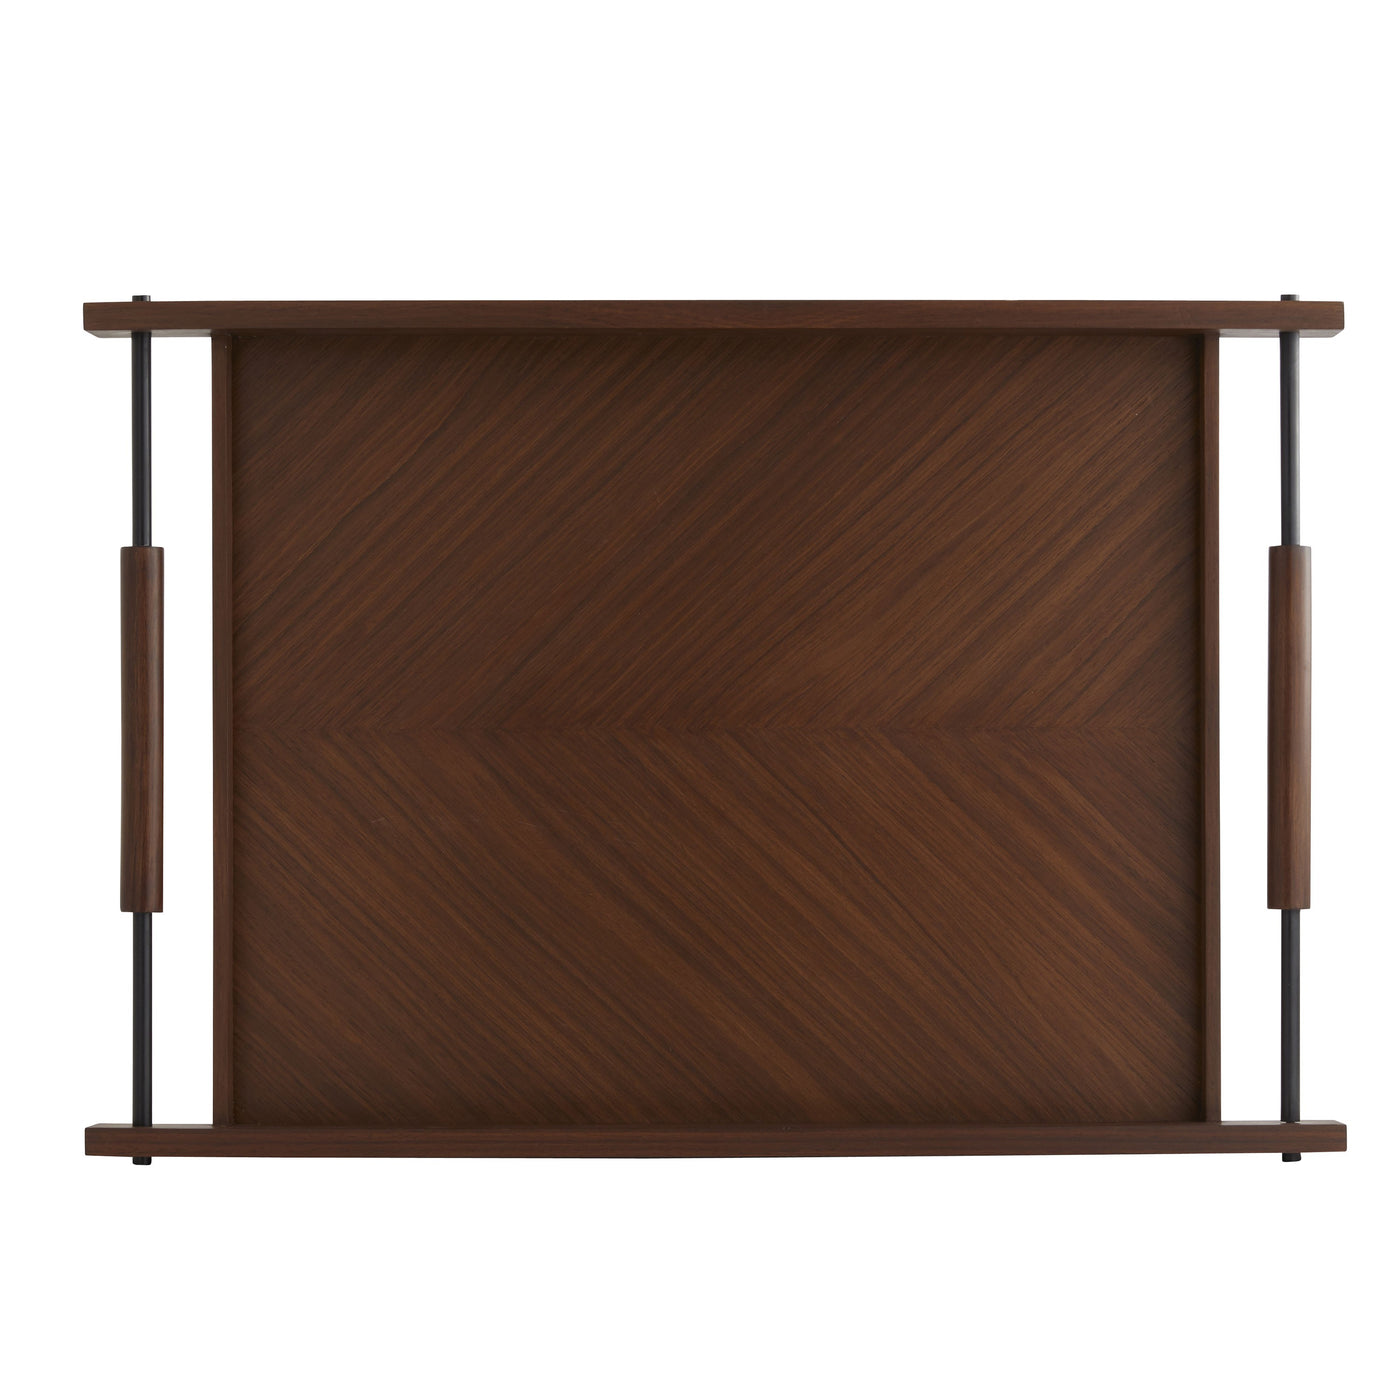 Arteriors Home Tract Tray Top View